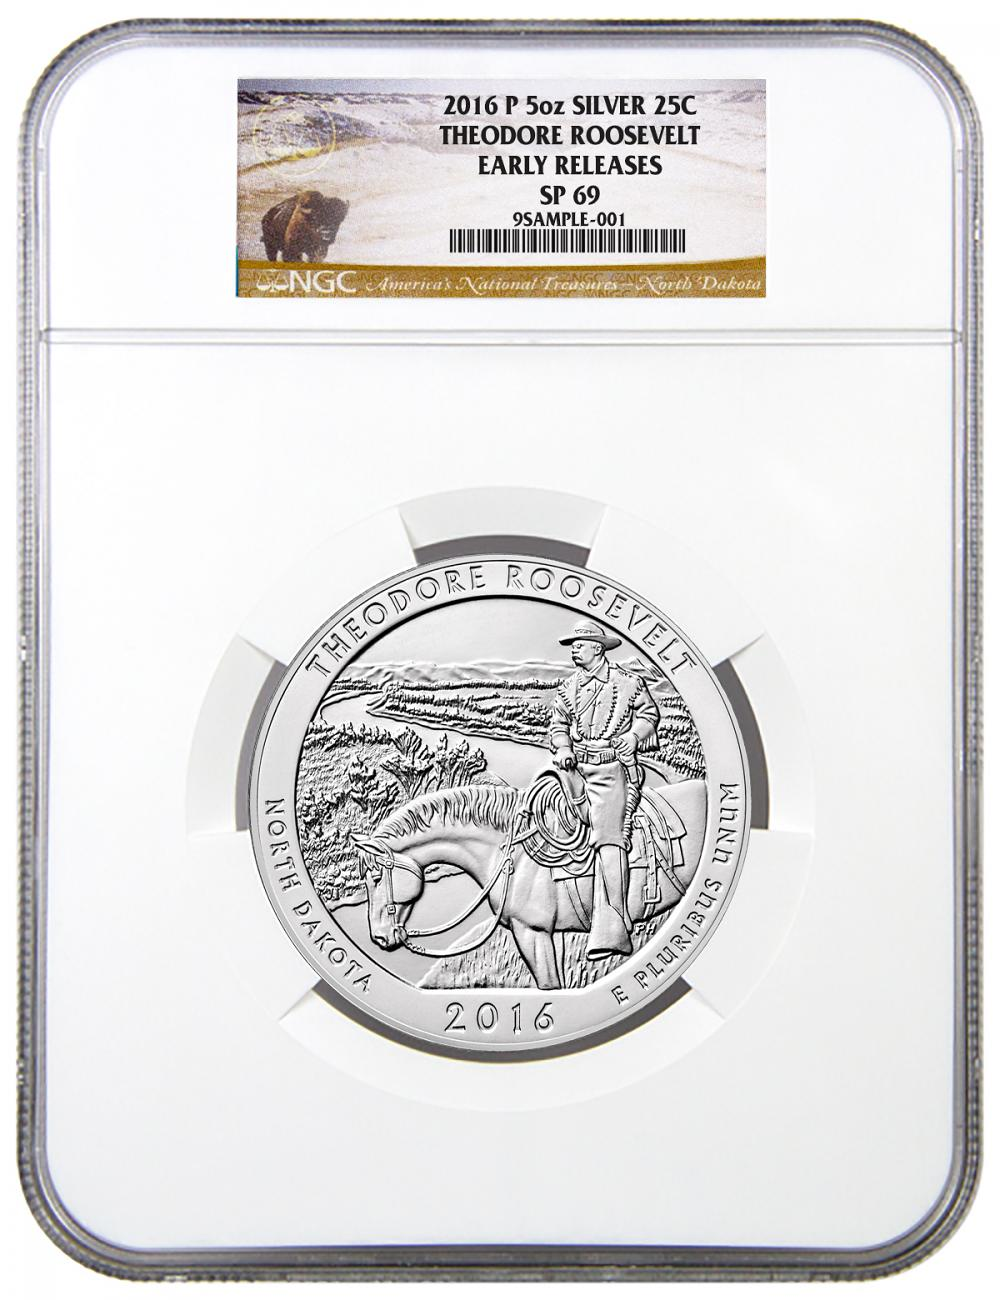 2016-P 25c 5 oz. Specimen Silver America the Beautiful - Theodore Roosevelt - NGC SP69 Early Releases